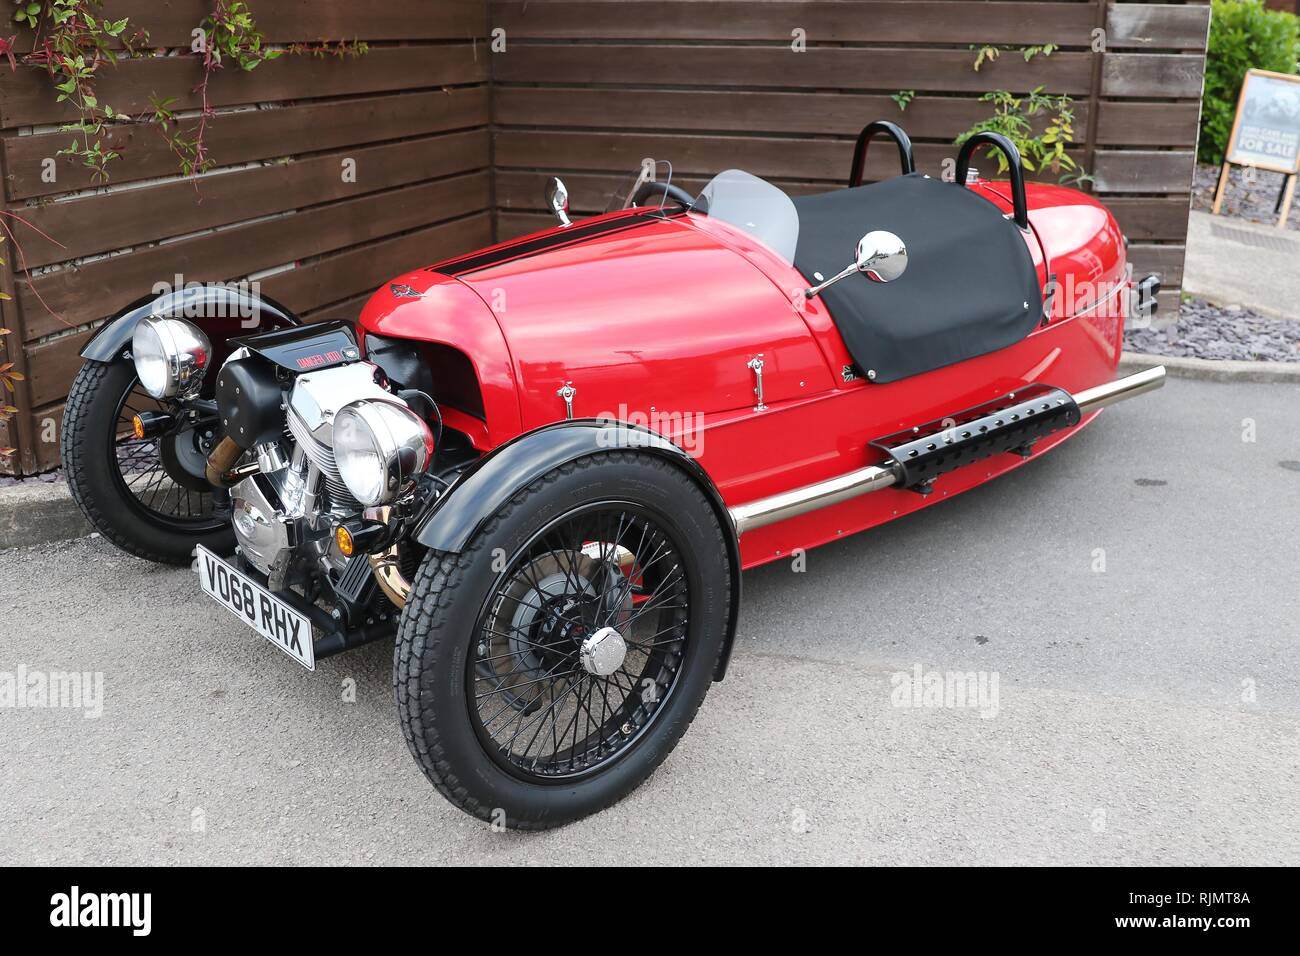 Morgan Sports Cars Ltd, Malvern, Worcestershire  Picture by Antony Thompson - Thousand Word Media, NO SALES, NO SYNDICATION. Contact for more informat - Stock Image